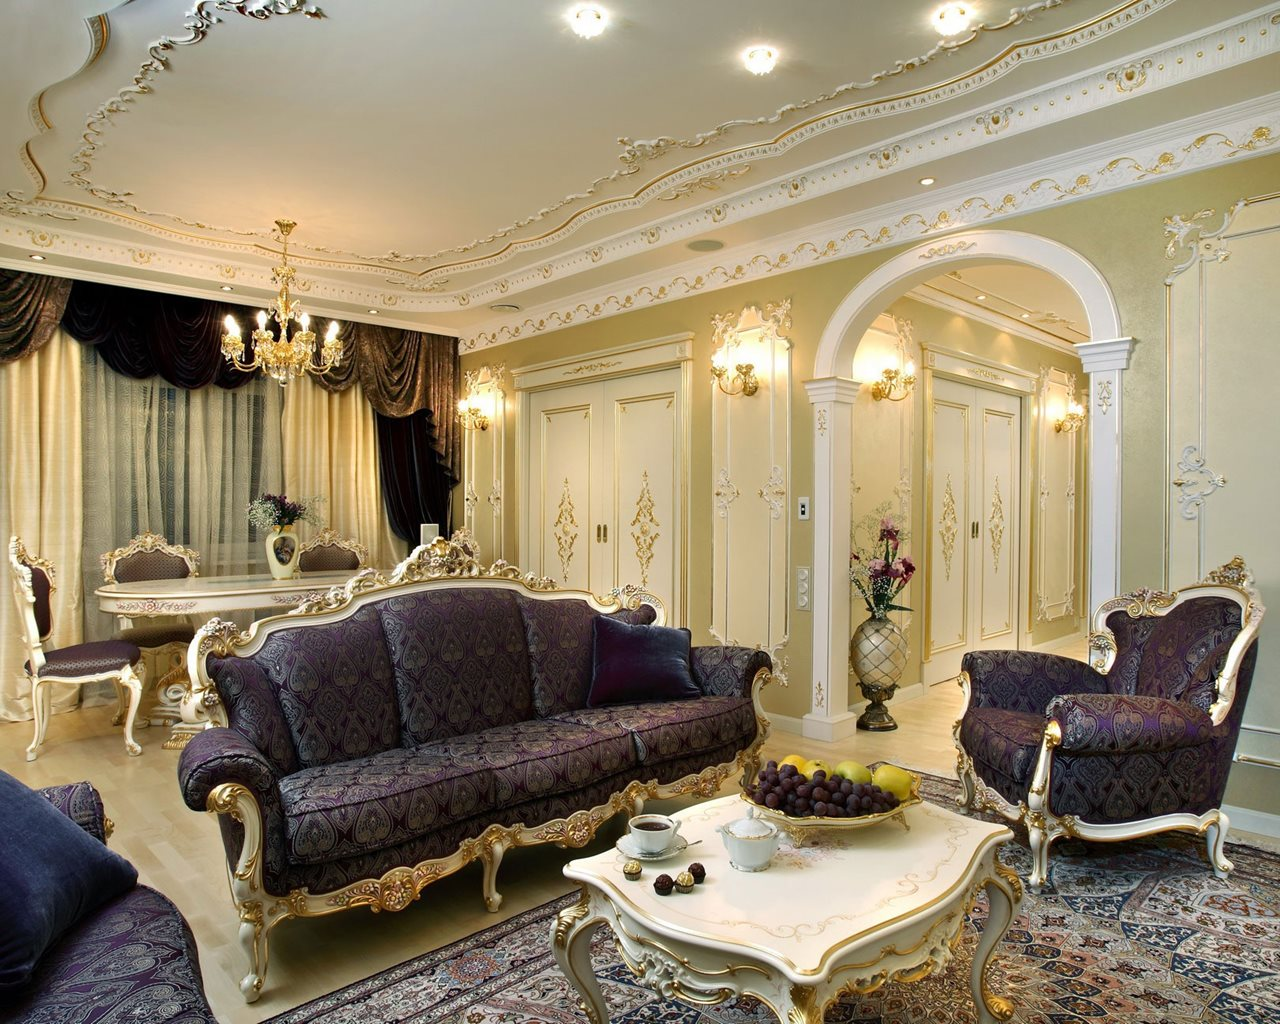 Baroque Style Living room interior design